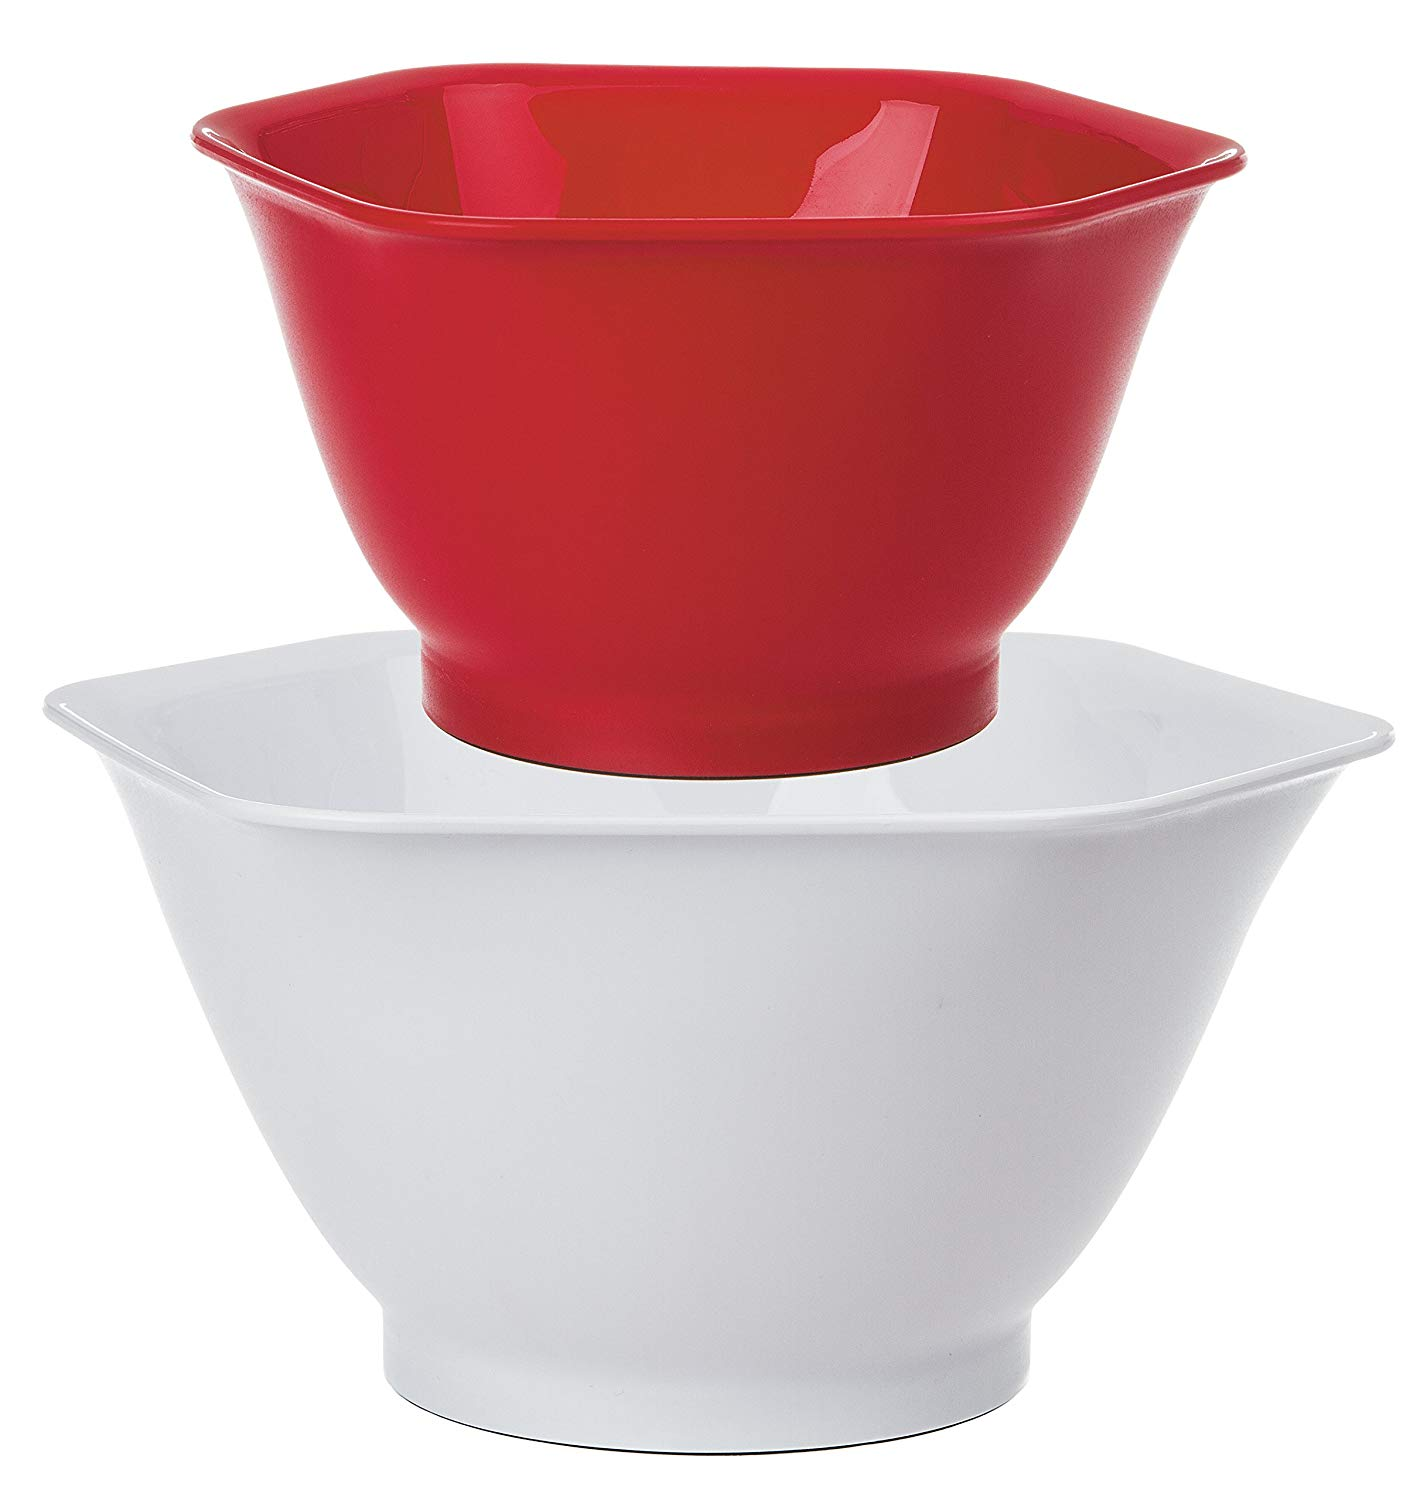 Prep Solutions by Progressive Hexi Mix 'N Pour Bowls - Set of 2